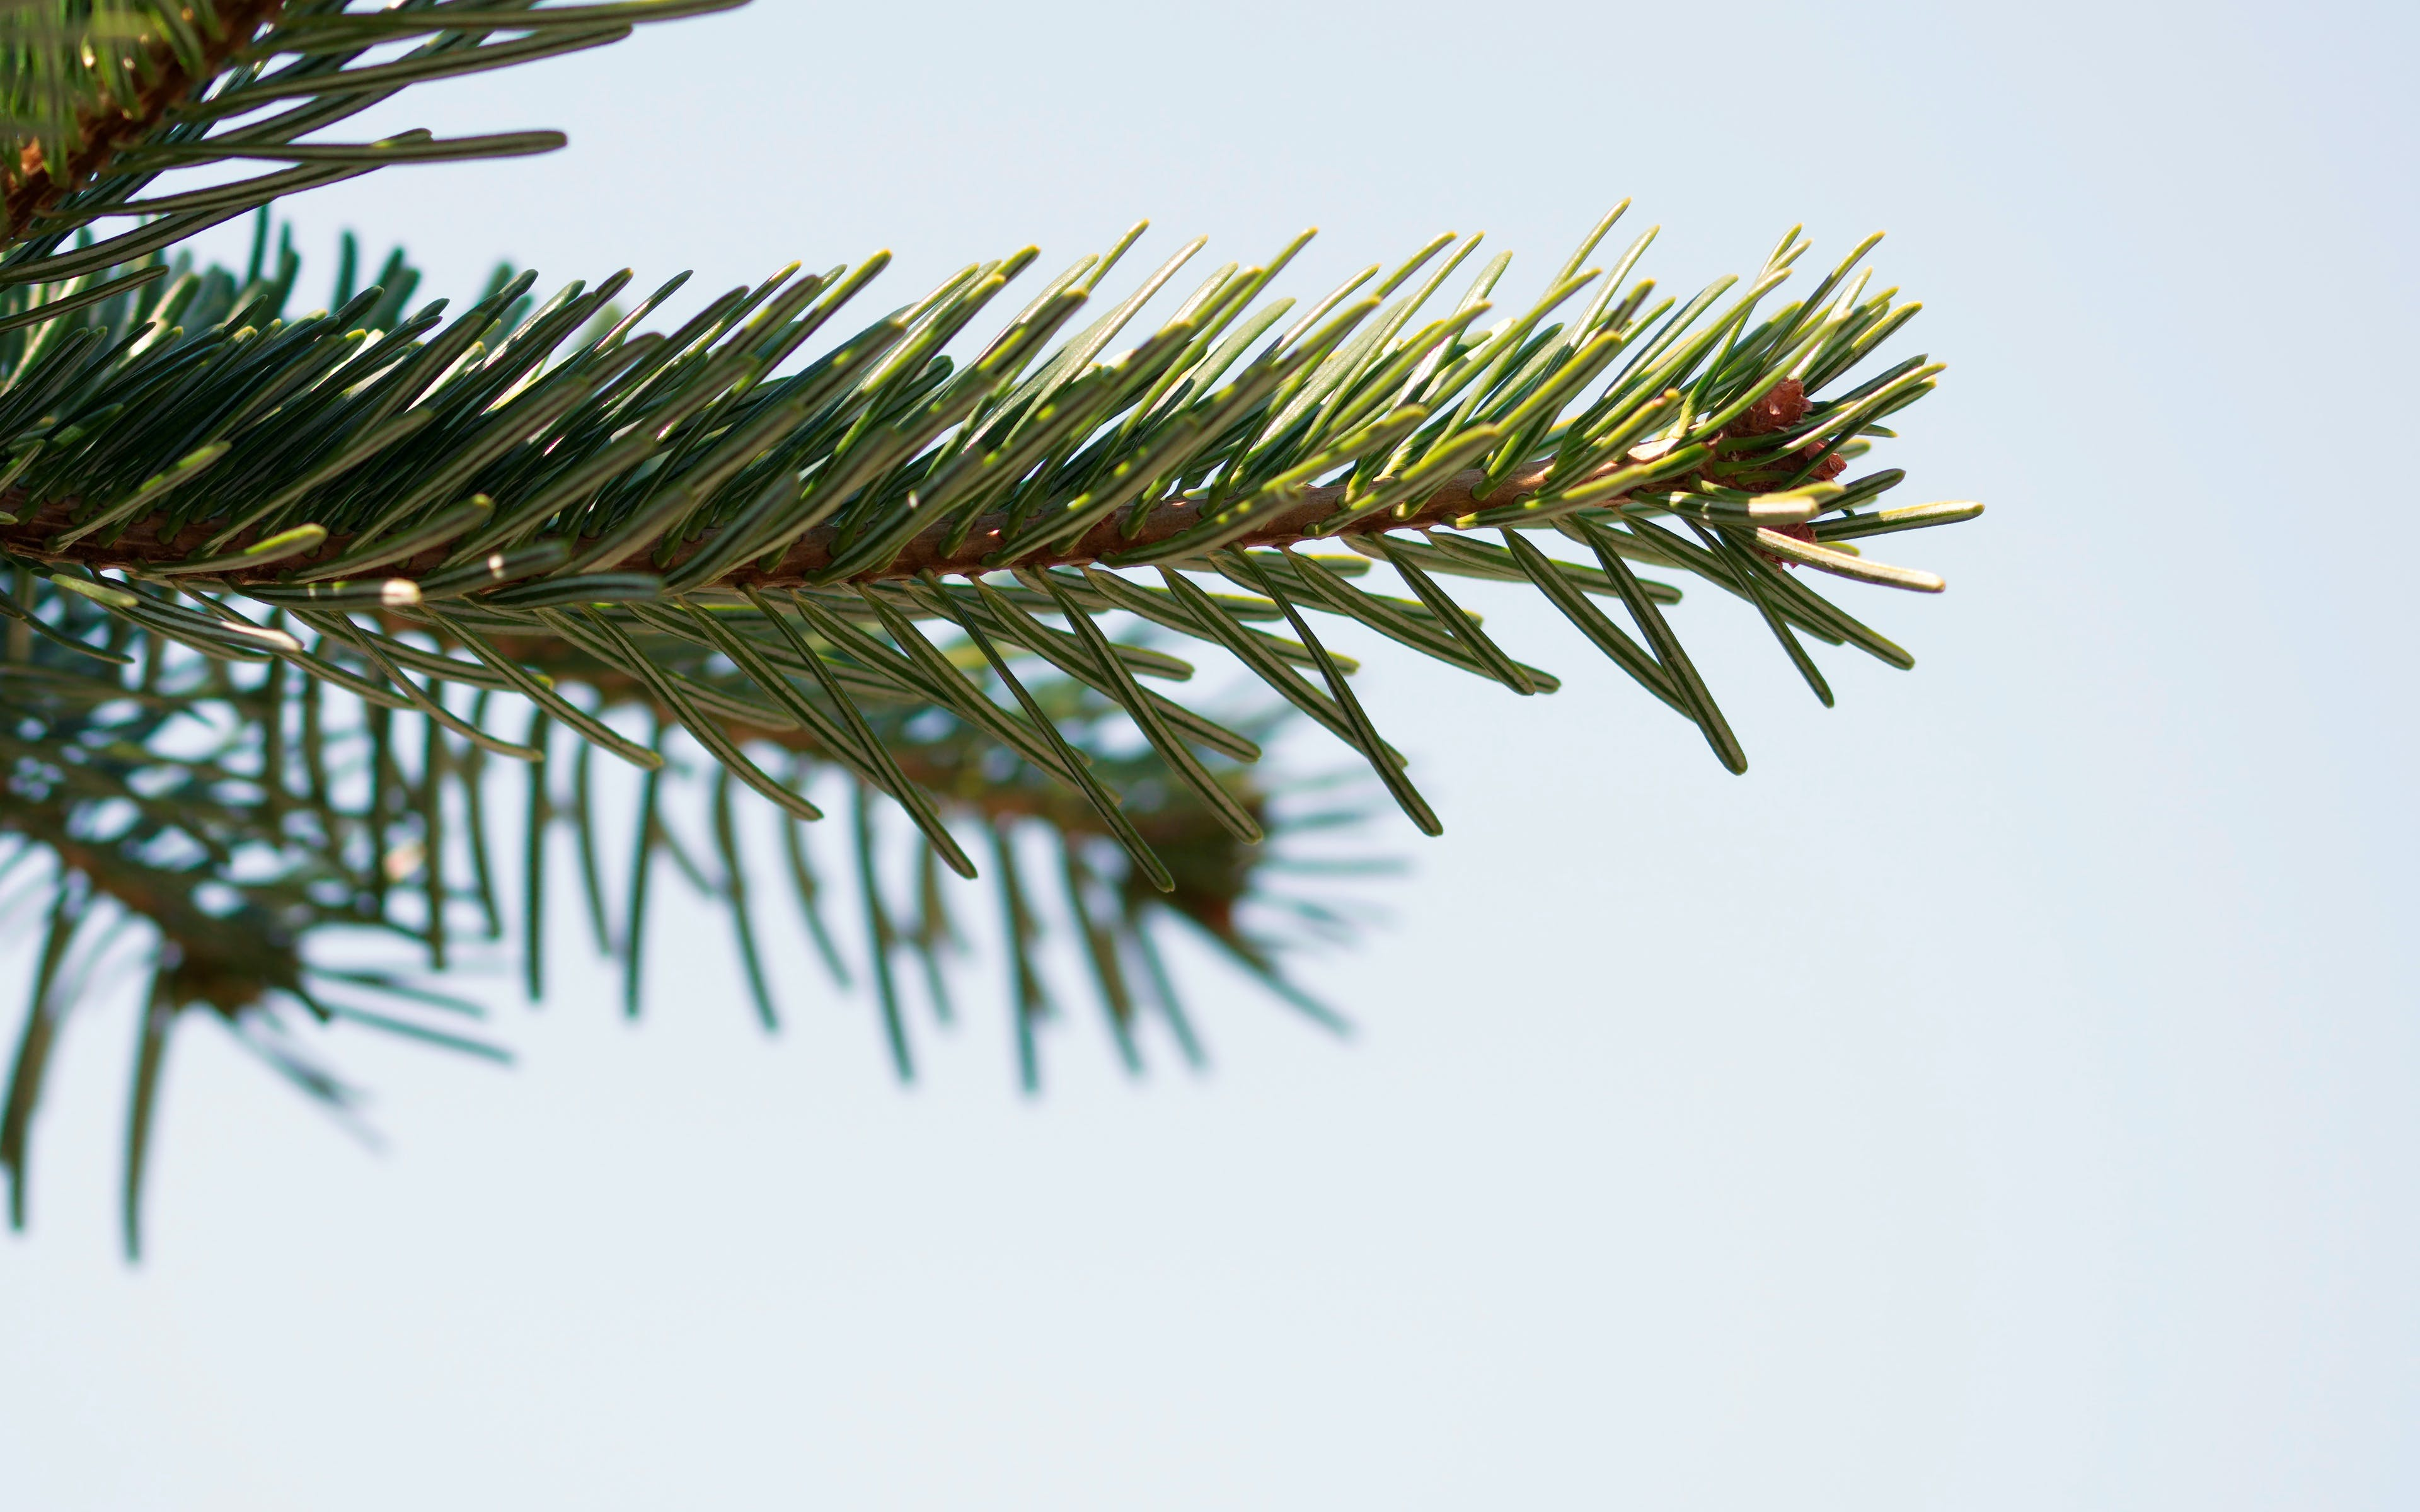 Selective Focus Photography of Pine Leaves